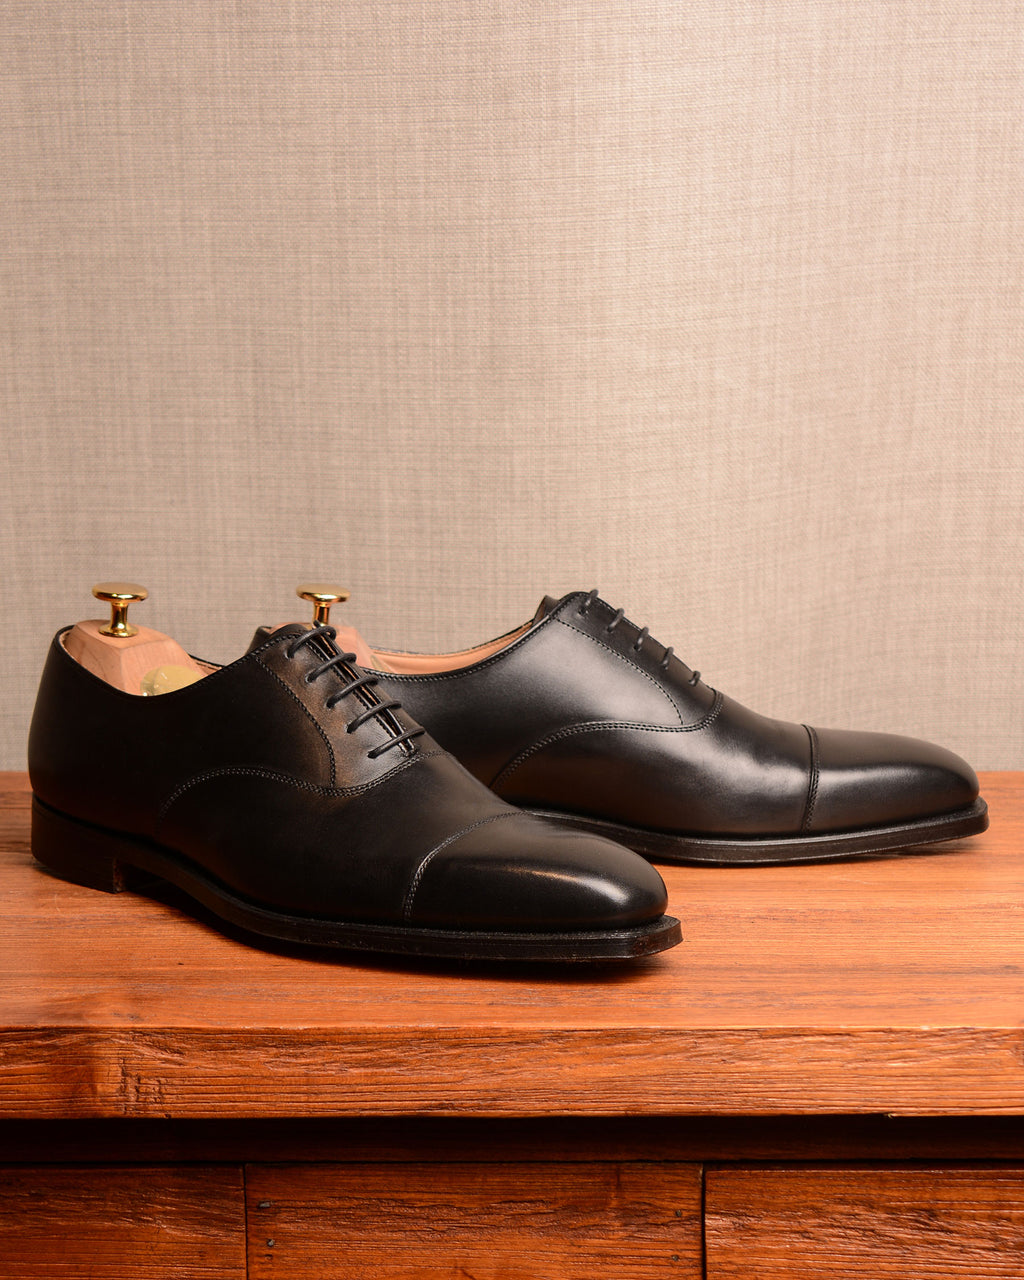 Crockett & Jones Hallam - Black